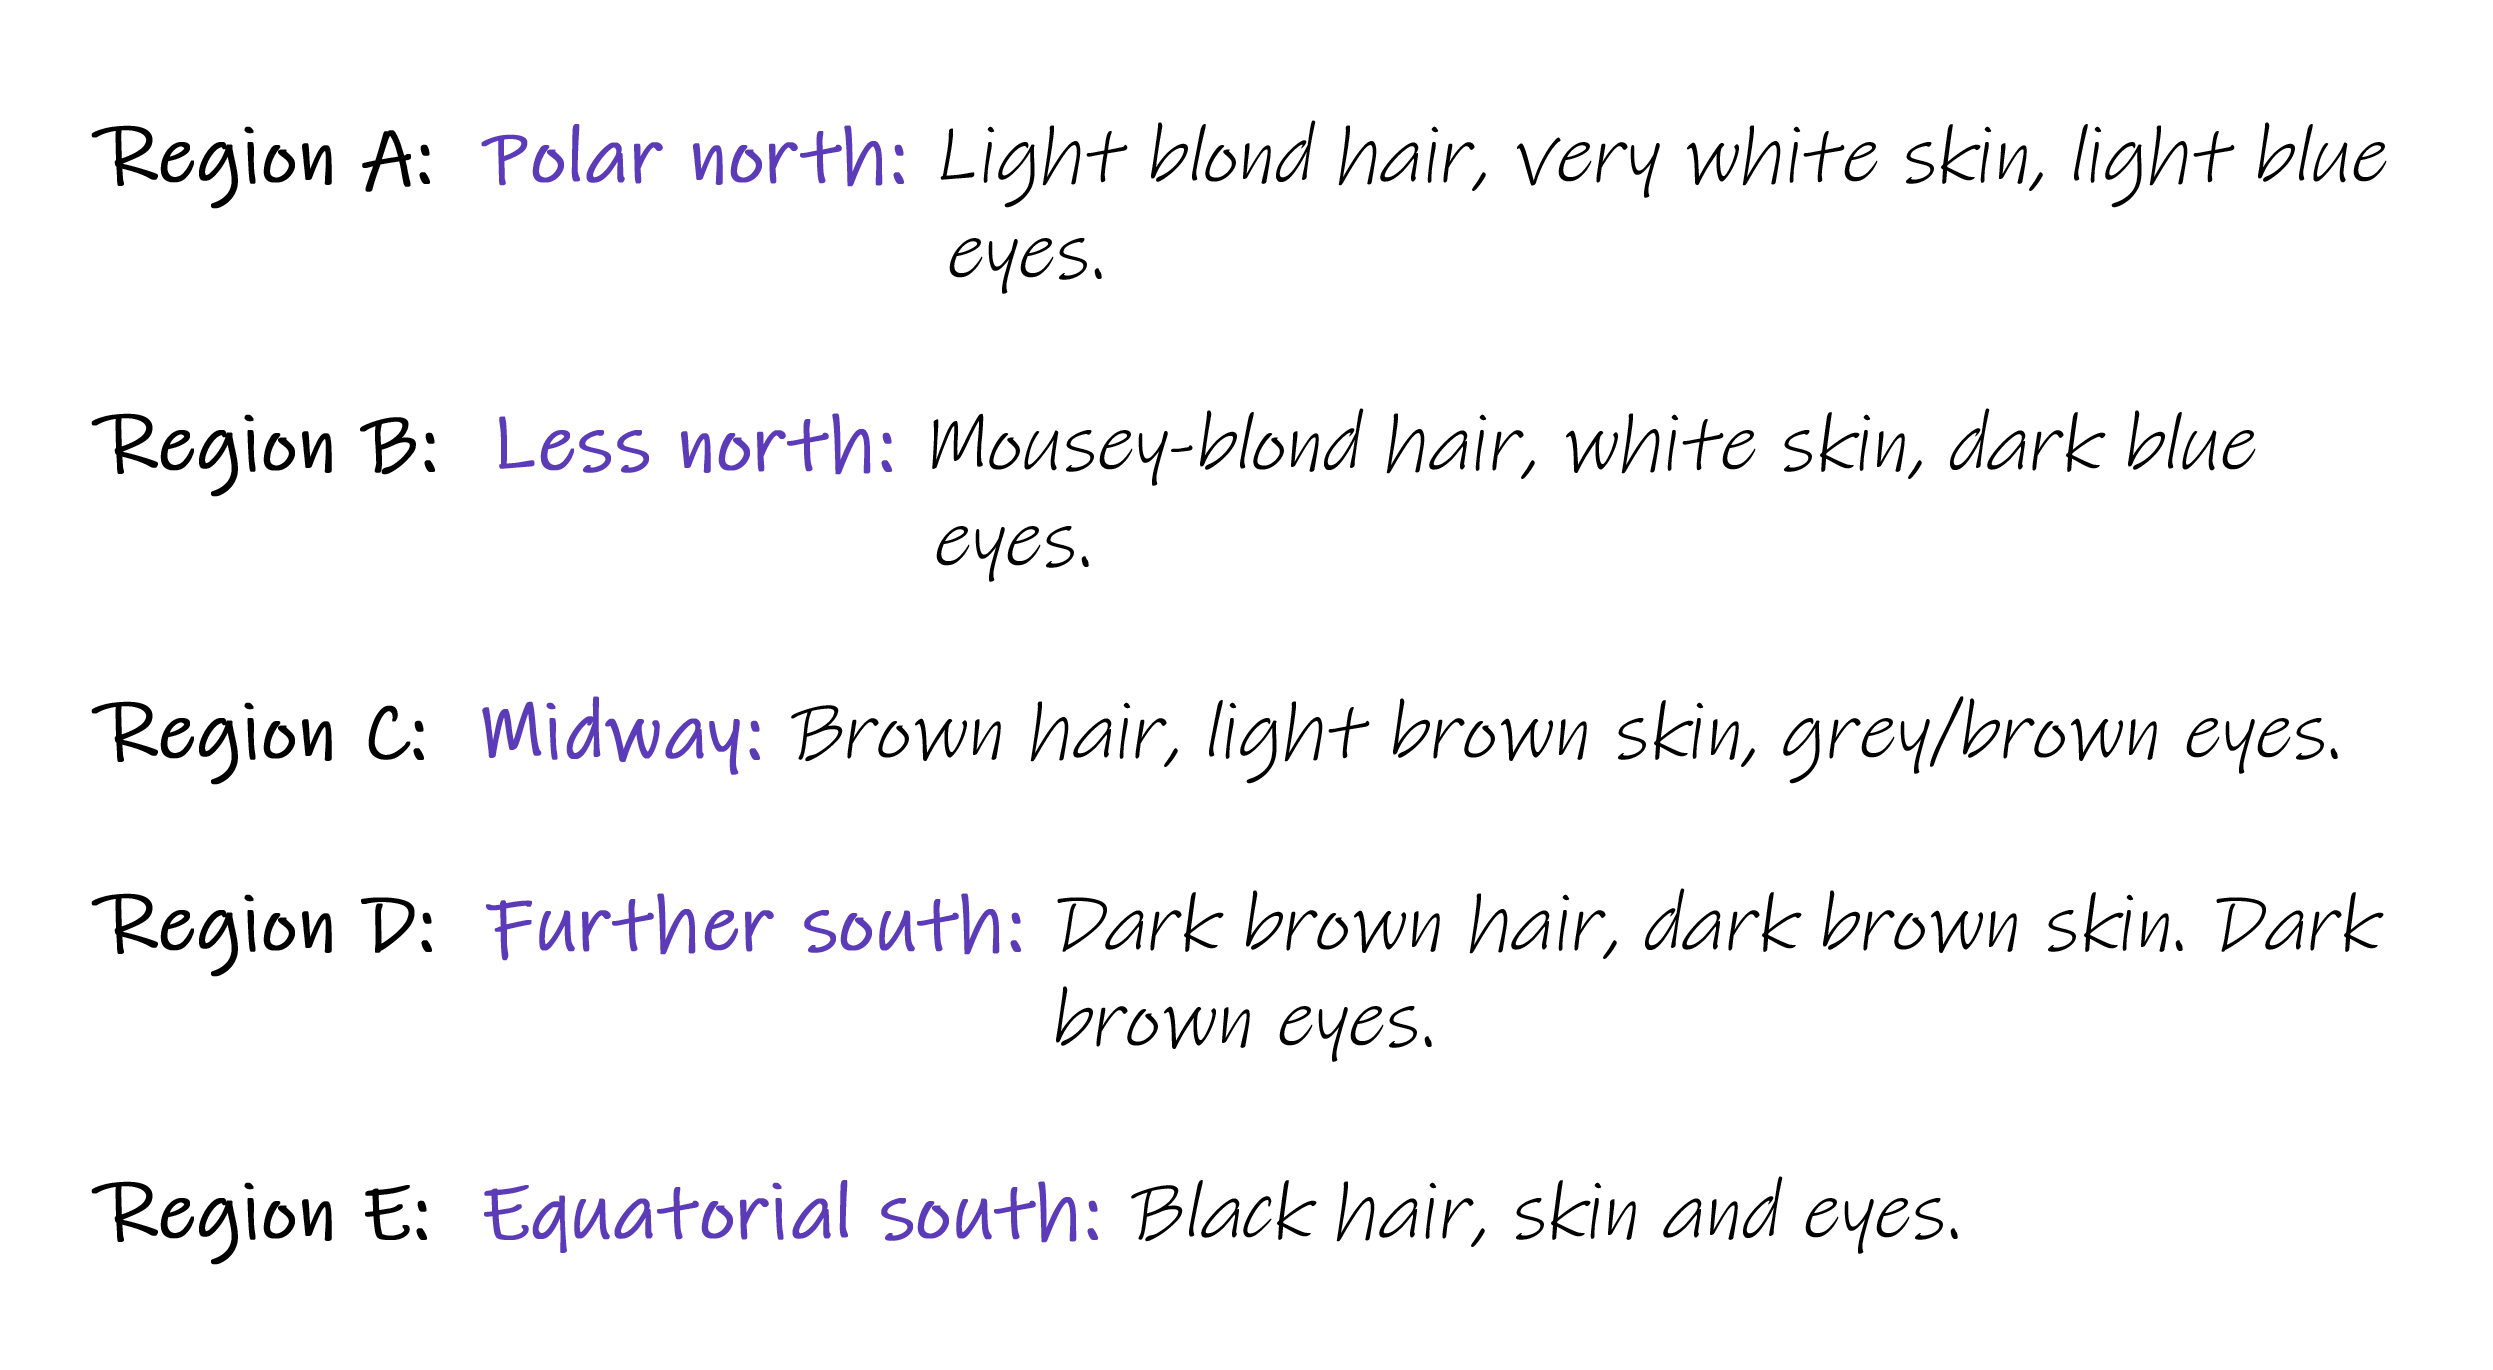 Regions A through E - from light hair and skin in the north to dark at the equator